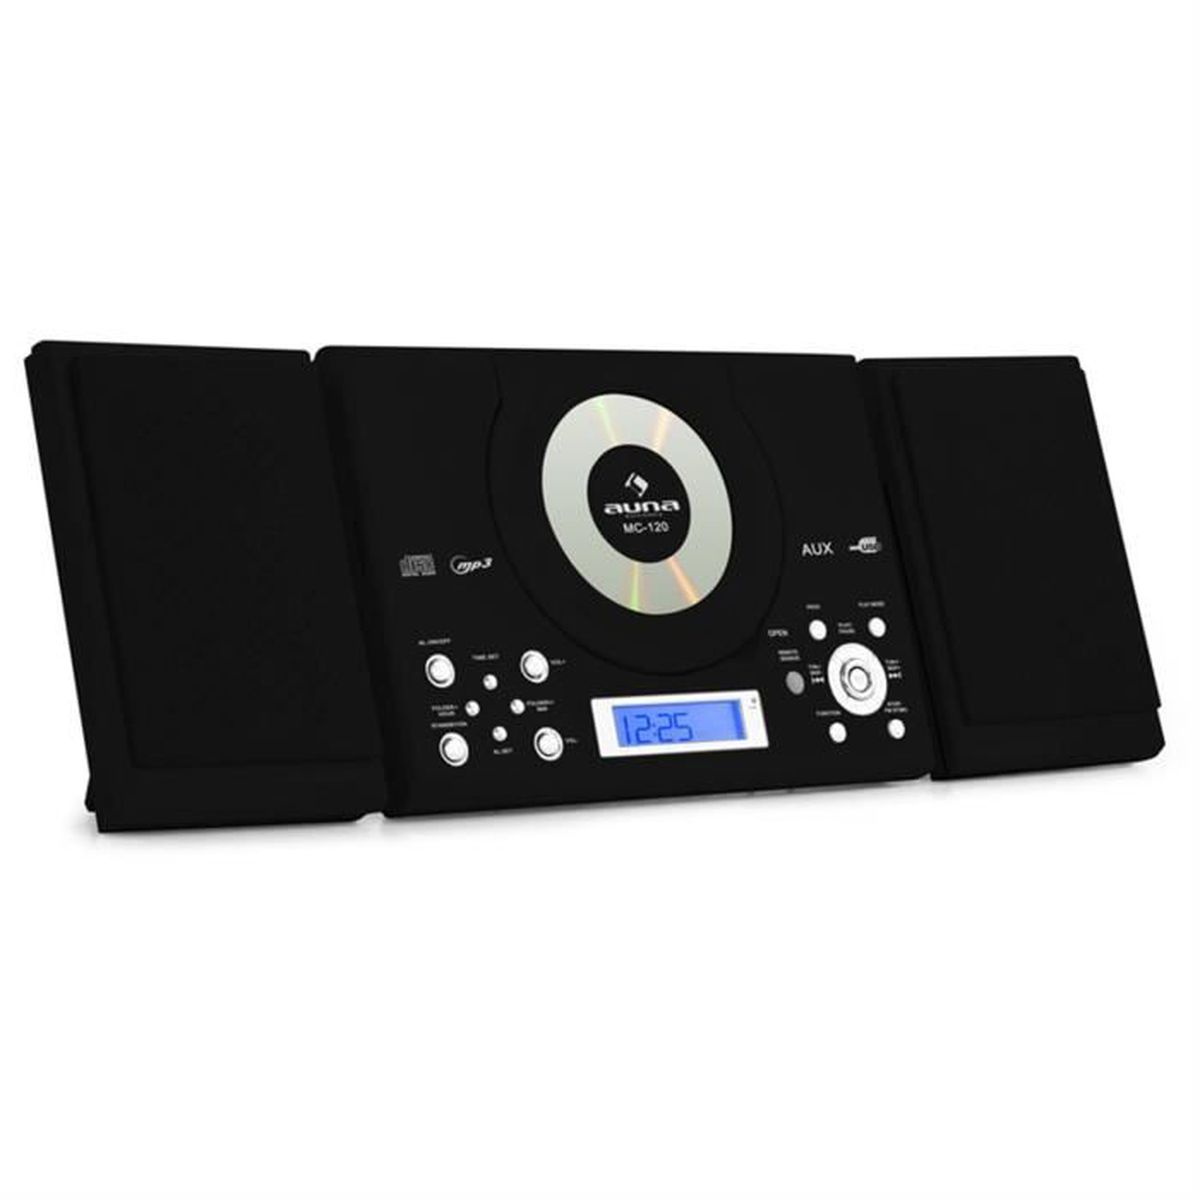 auna mc 120 chaine hifi st r o lecteur mp3 cd usb noir. Black Bedroom Furniture Sets. Home Design Ideas